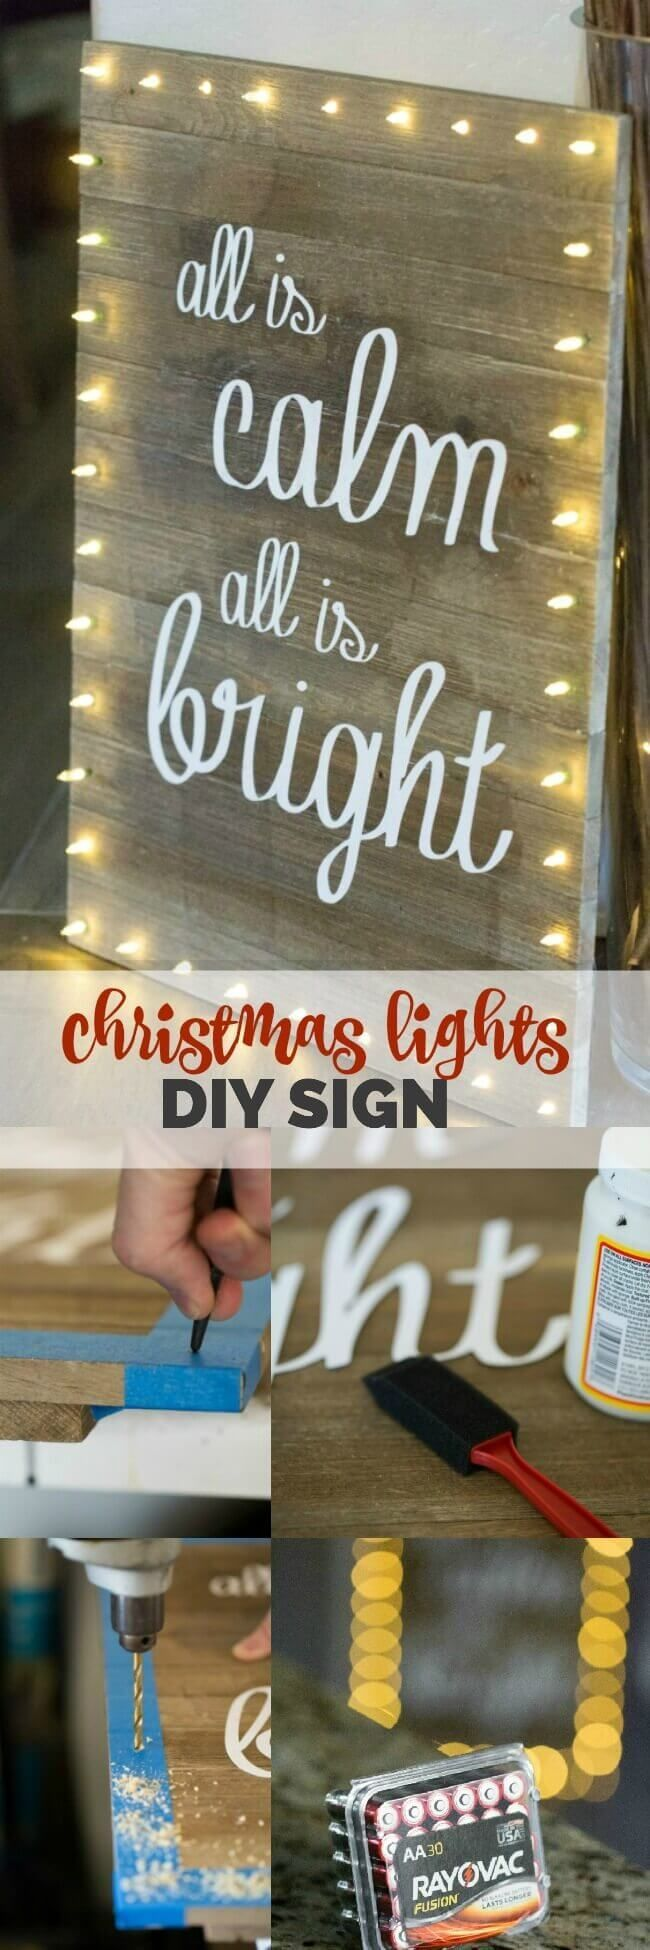 Christmas Lights DIY Board Sign via @spaceshipslb @rayovac #SureThing #ad